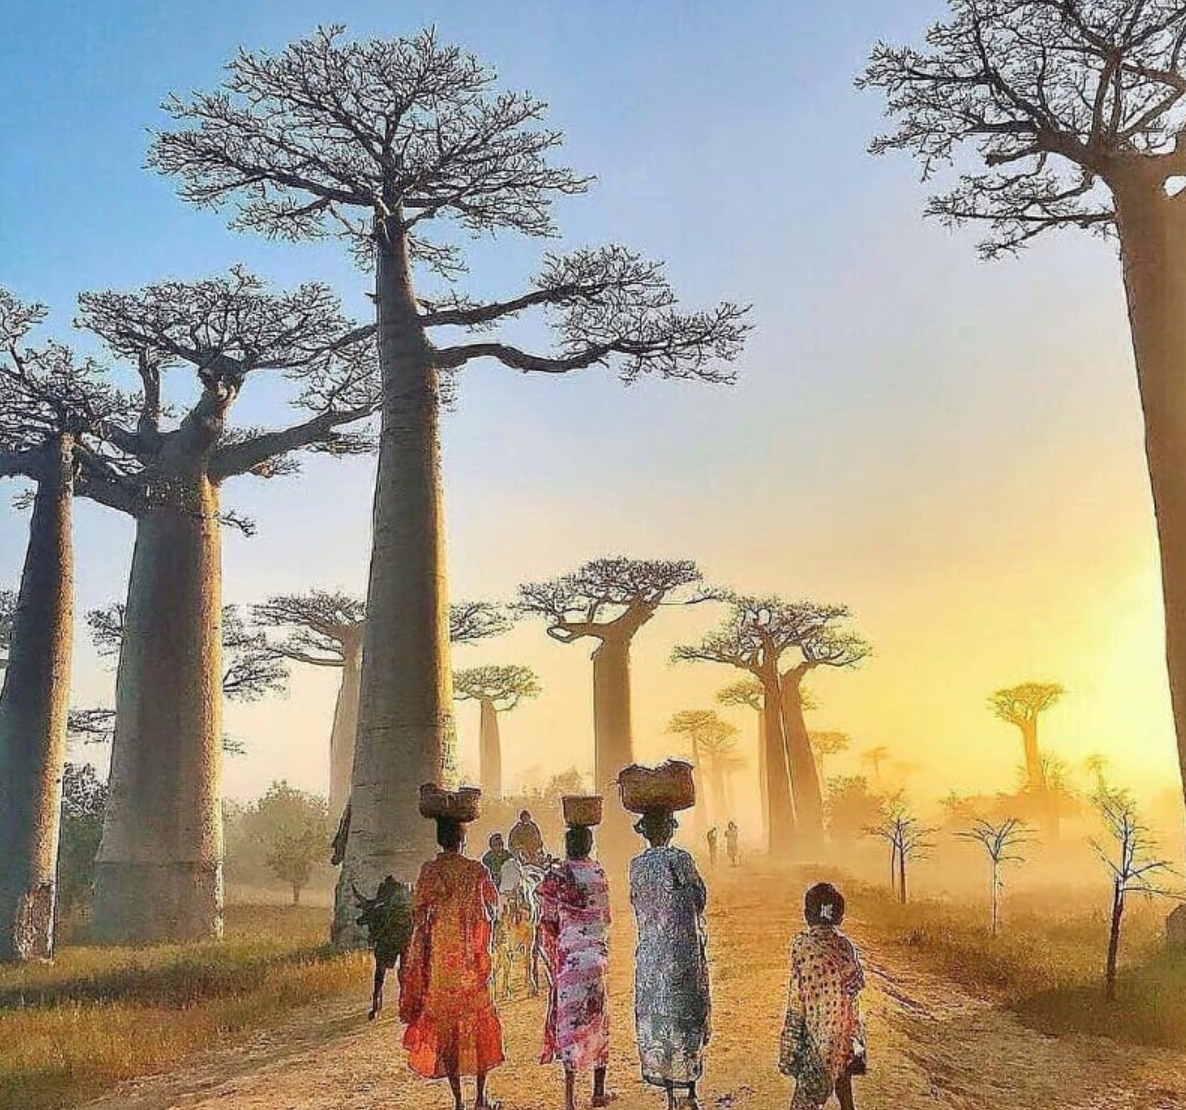 Instagrammable Spots In Madagascar